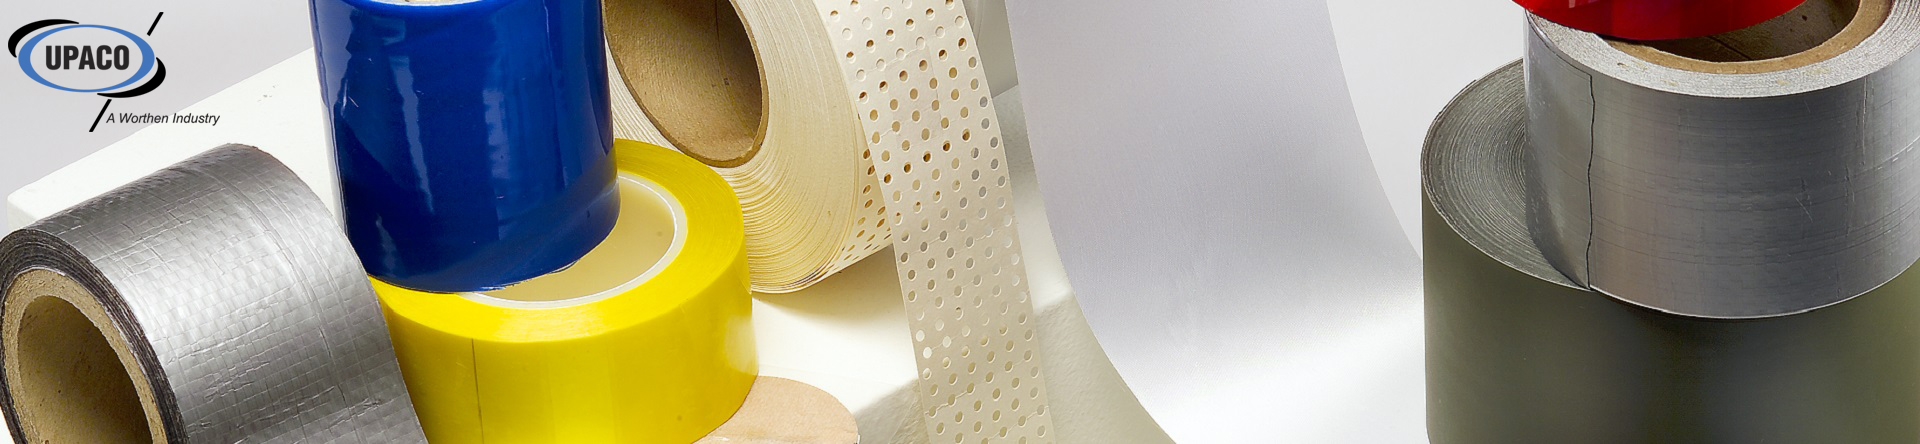 Adhesive Coated Products: Capabilities